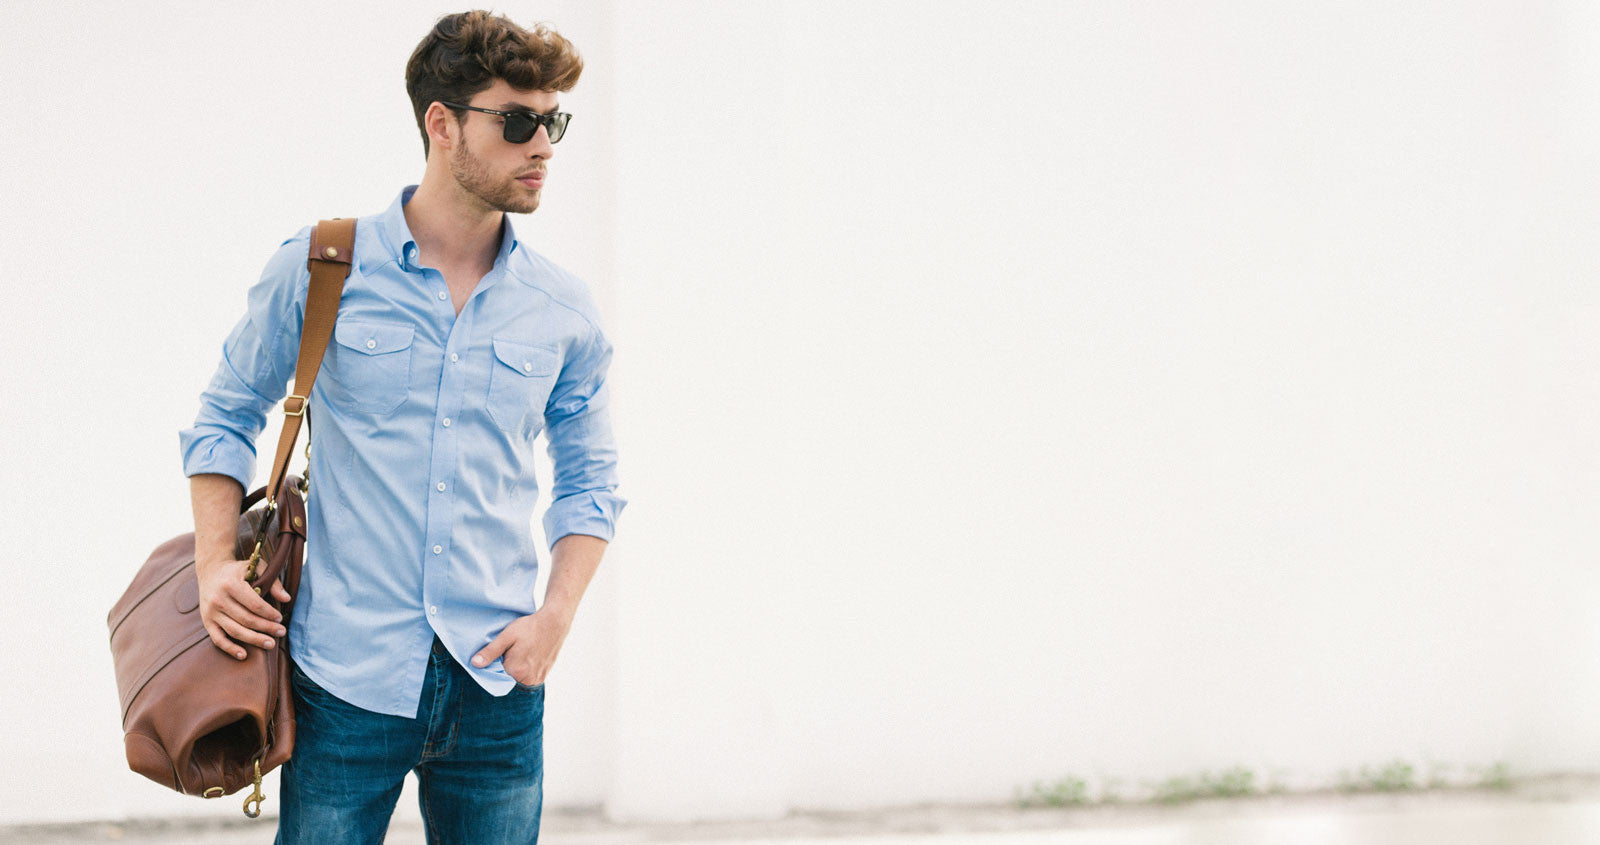 Men's Utility Shirt Style Guide